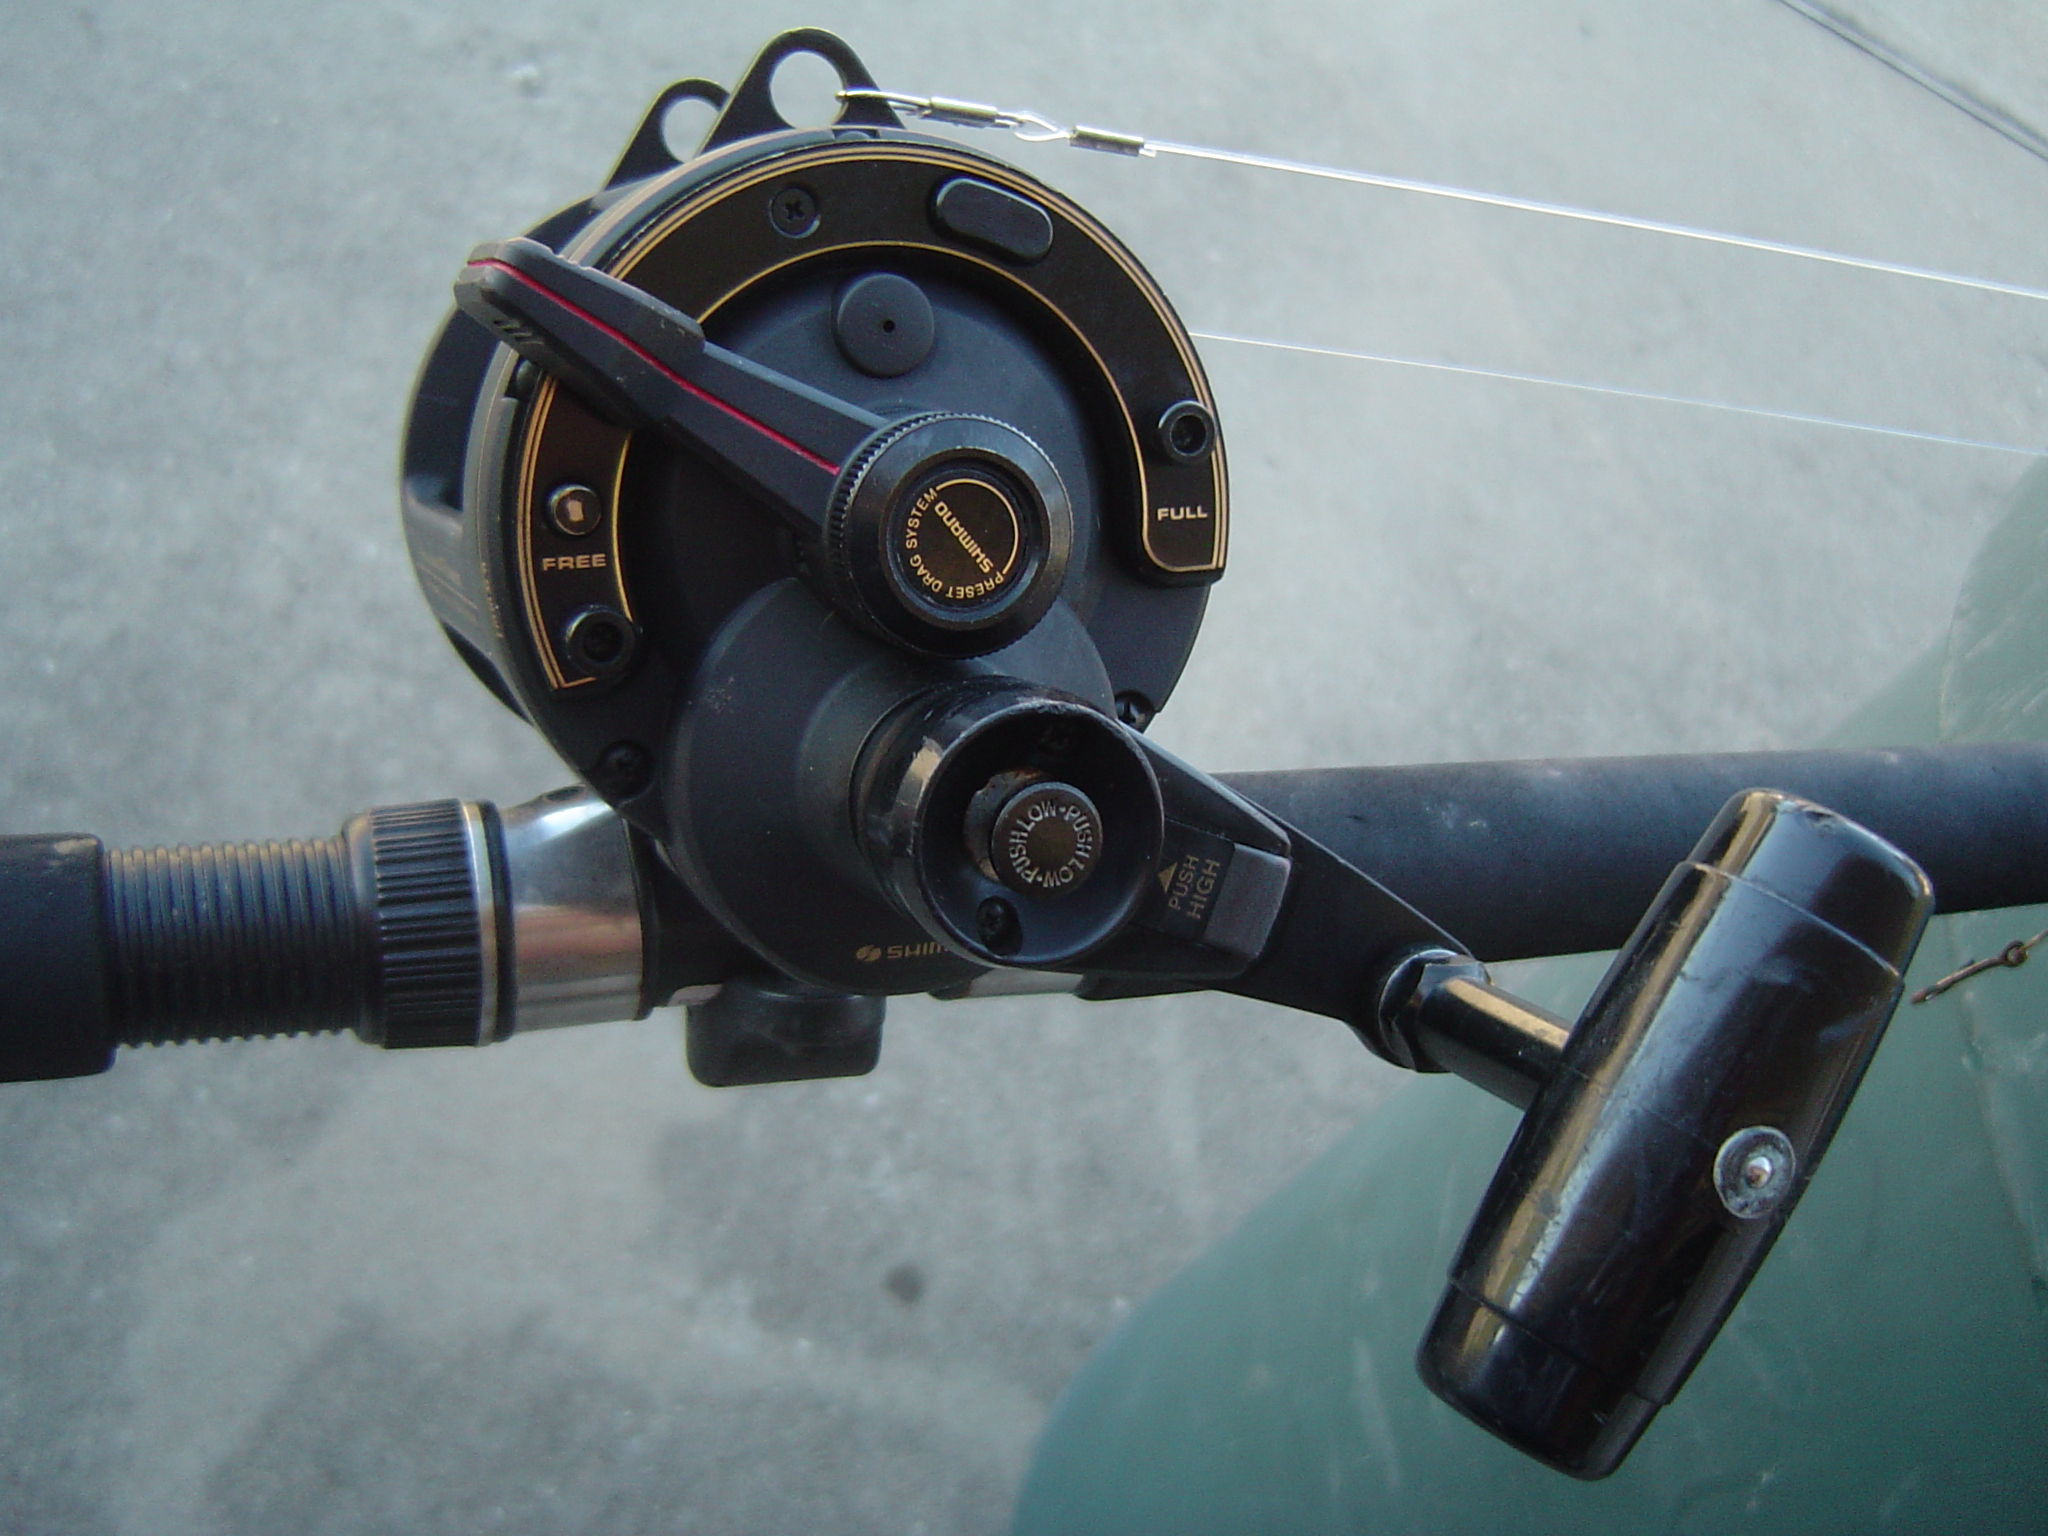 1e86cd17257 Okuma Titus T50 and Shimano Beastmaster with rods for sale-dsc00714-jpg